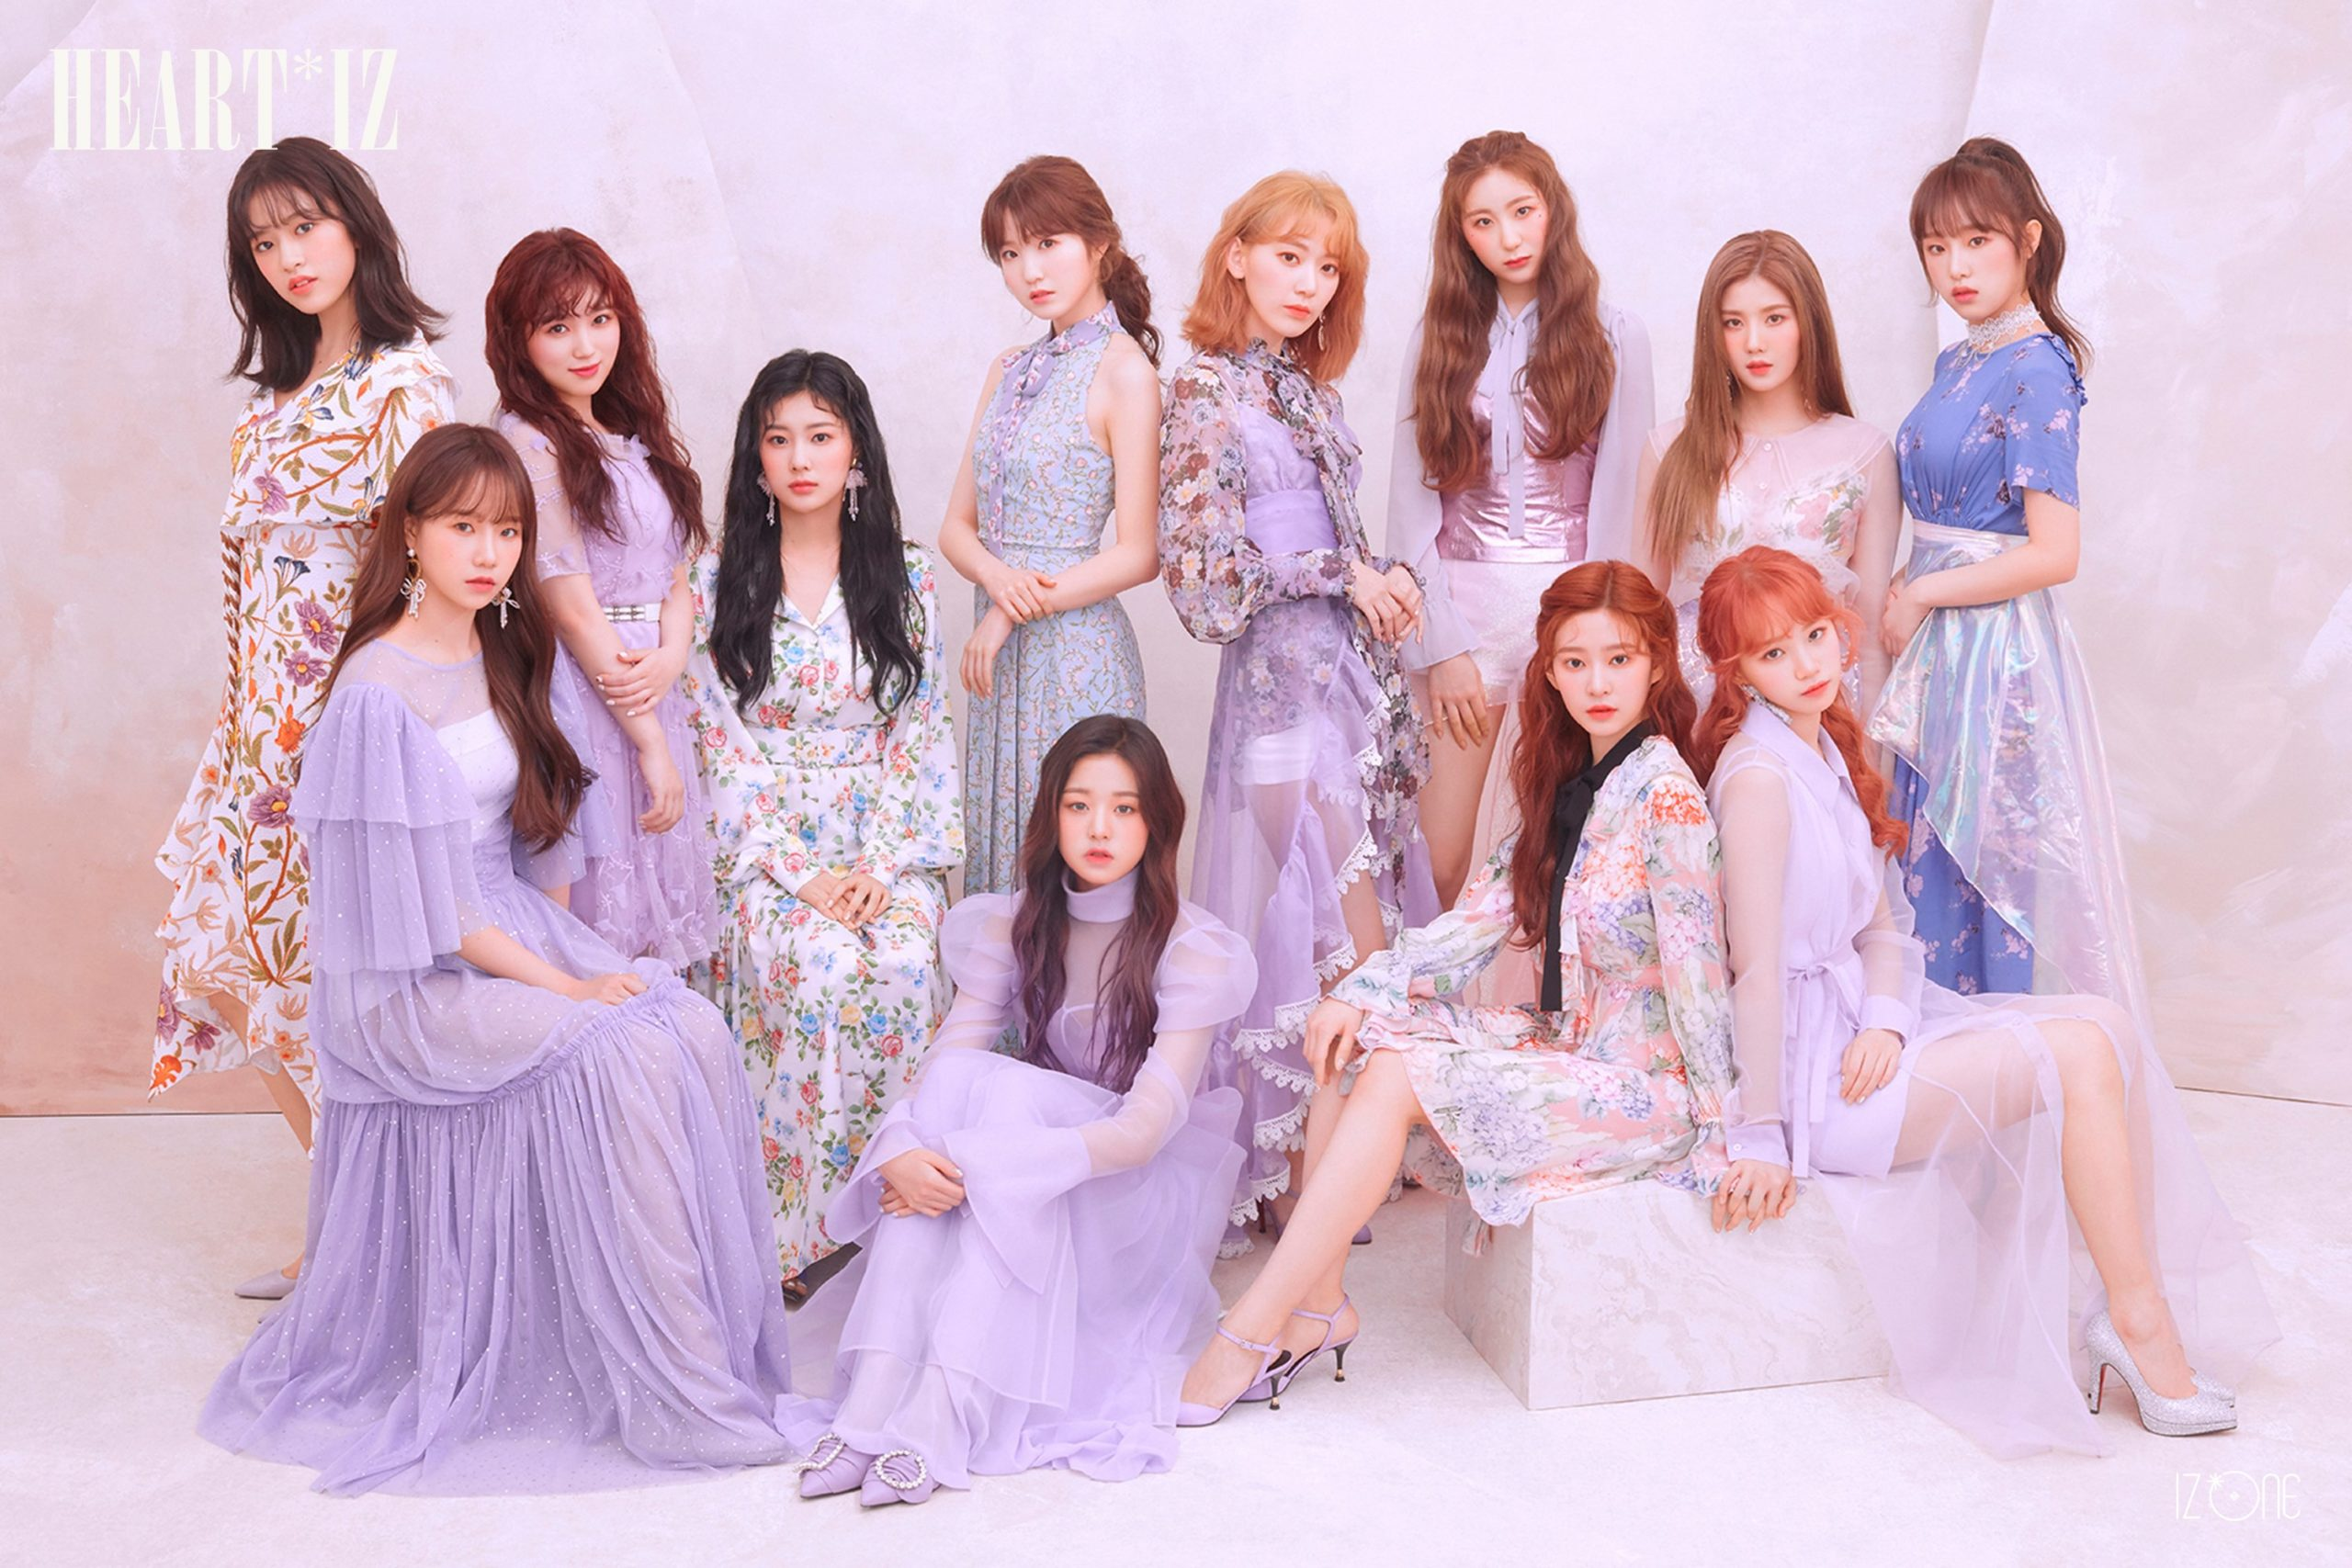 IZ*ONE To Hold Magical Online Concert 'ONERIC THEATER' In September